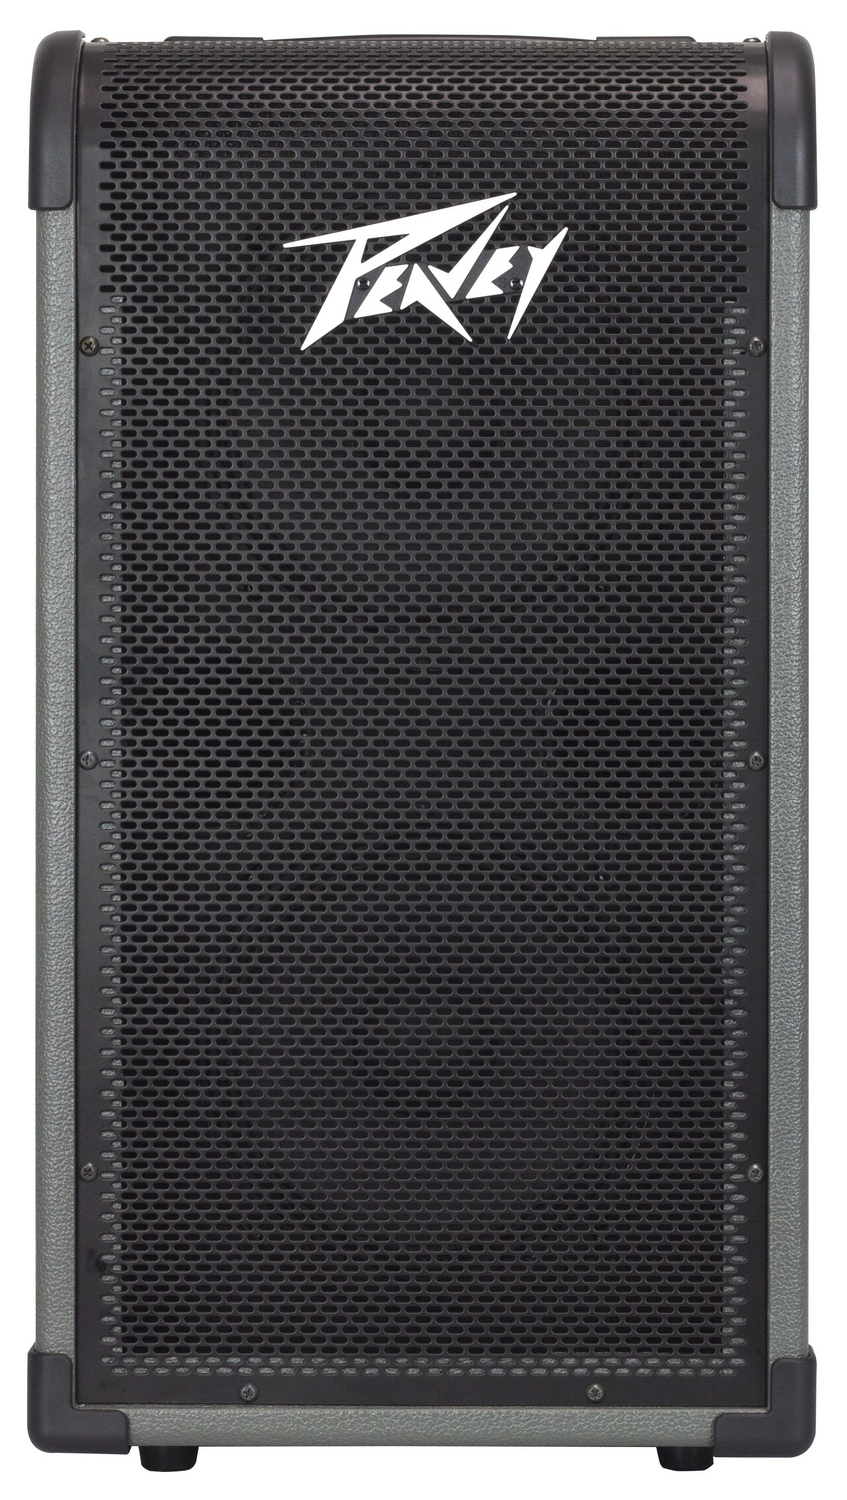 Peavey 3617410 Max 208 120US Bass Combo Amp Speaker with 3 EQ Gain Boost